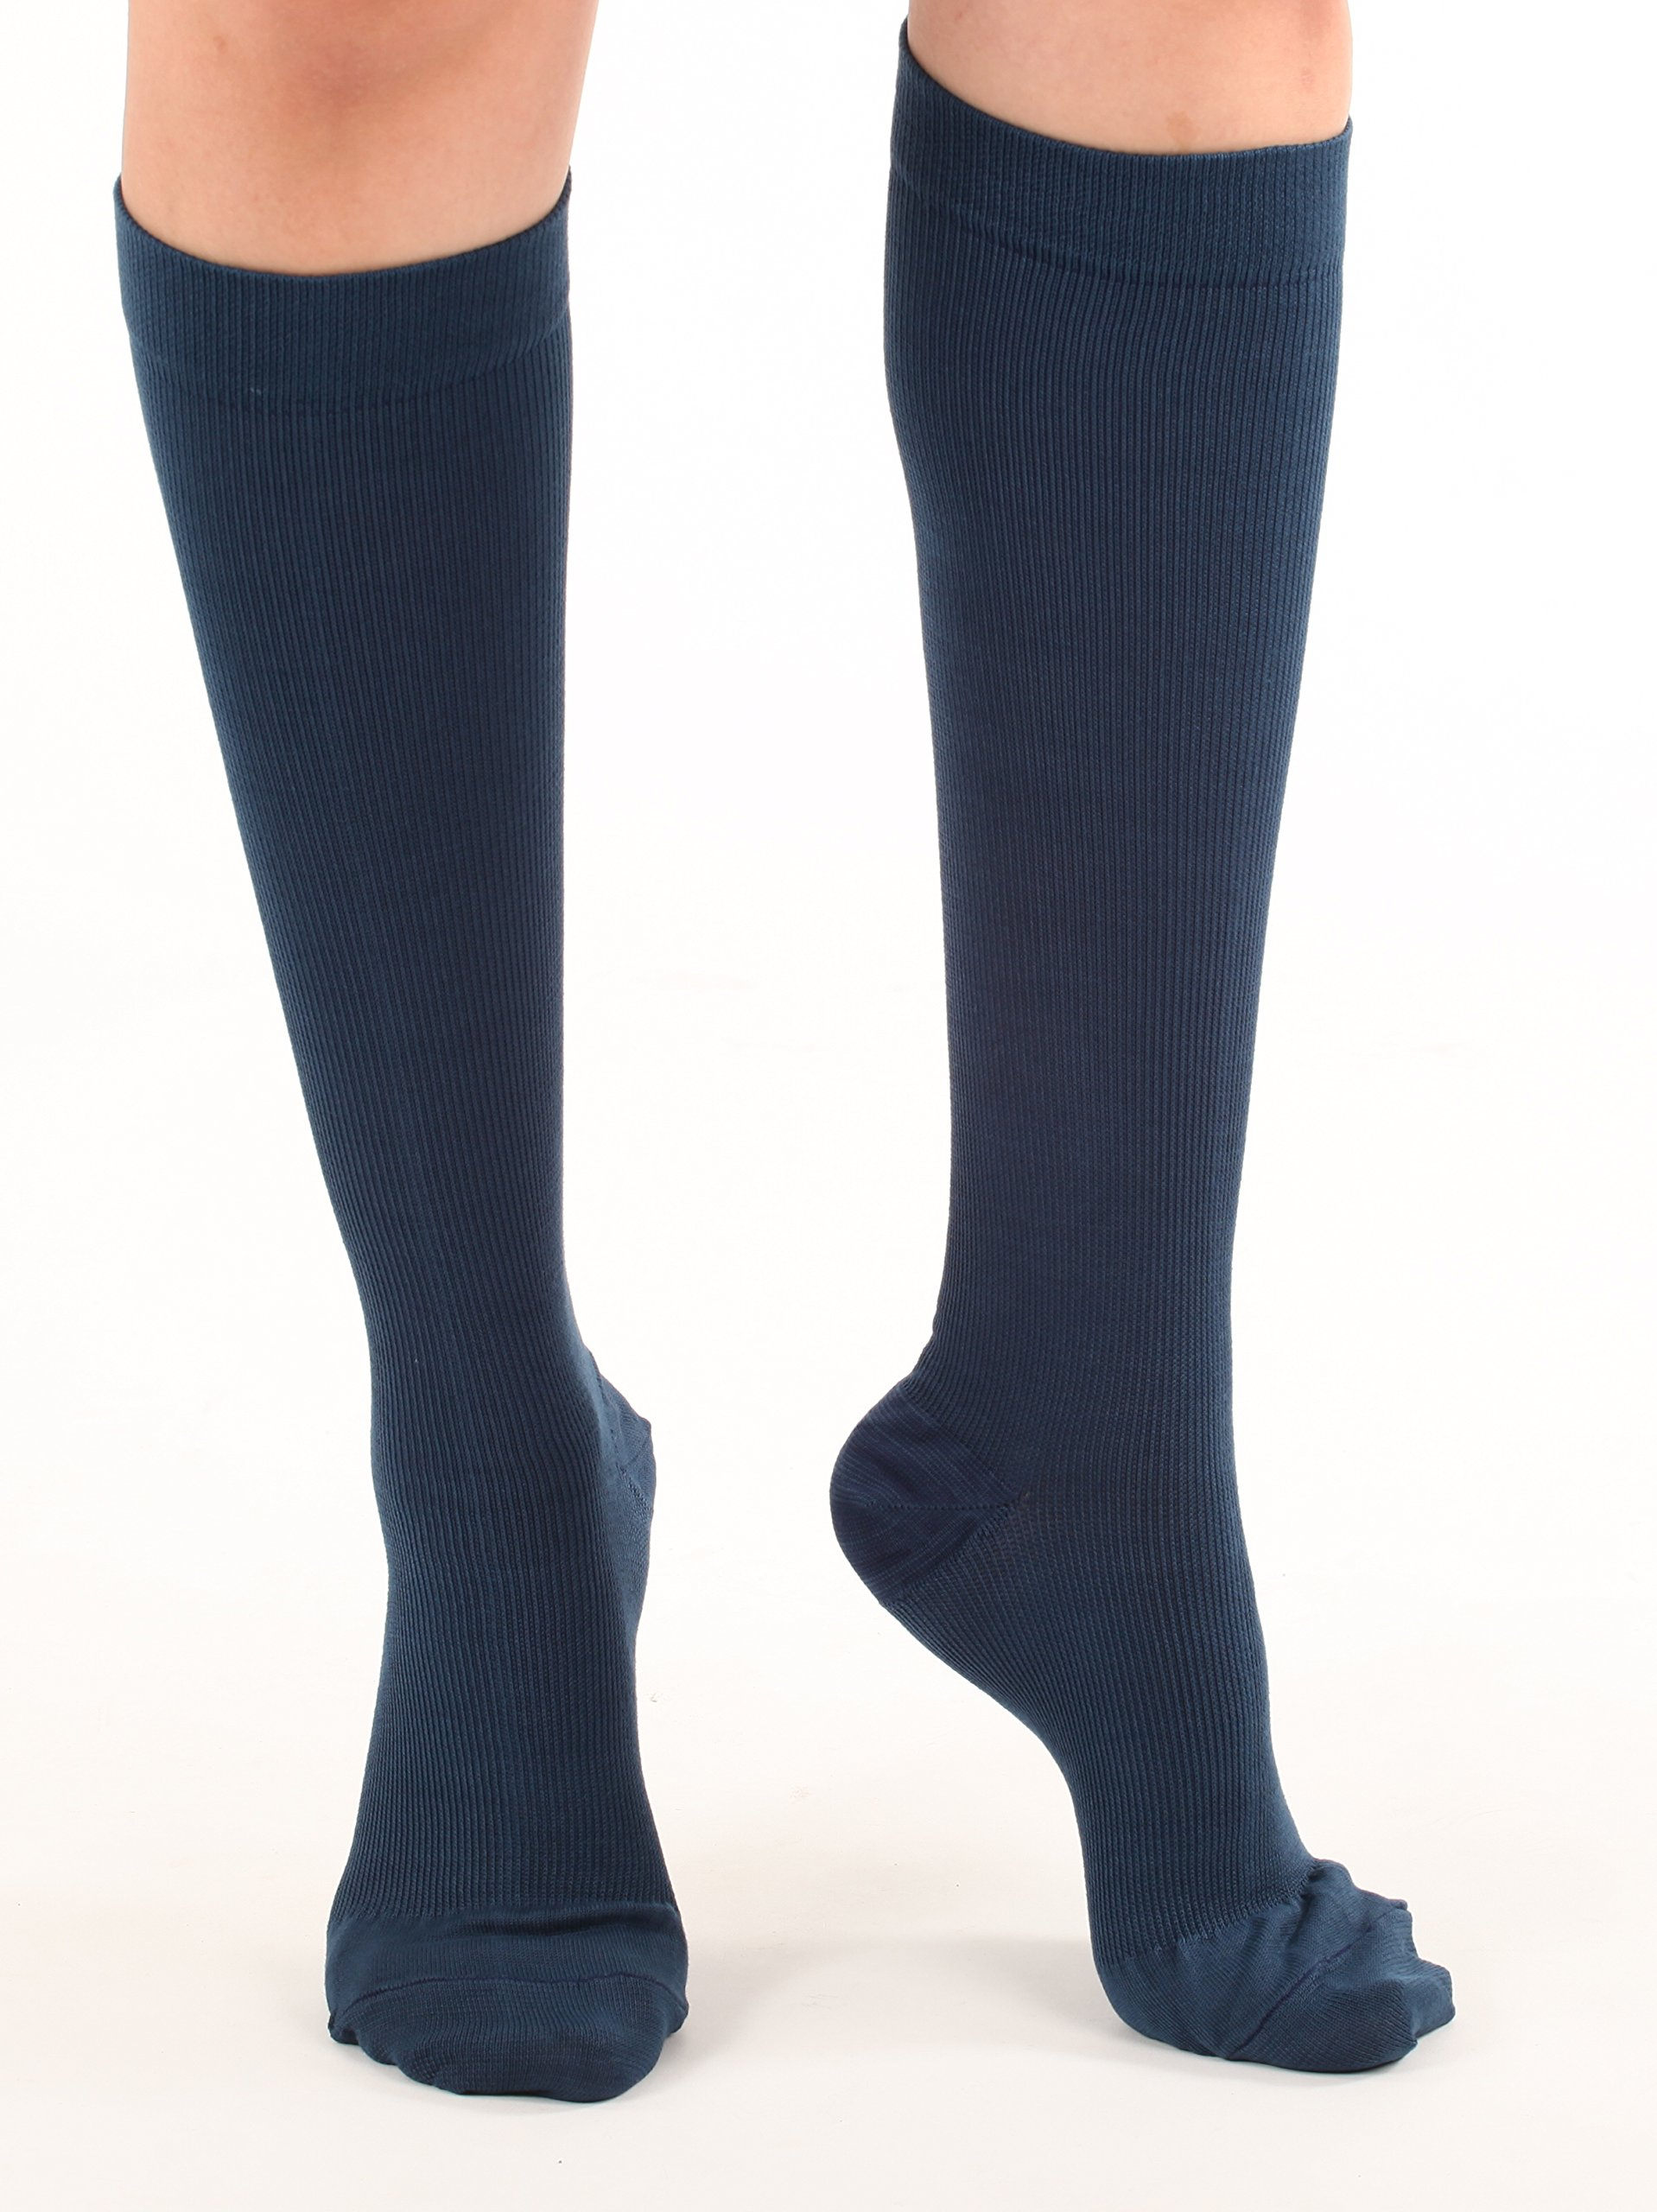 Made in The USA - Medical Compression Socks for Men, Firm Graduated Support Socks 20-30mmHg - Closed Toe - 1 Pair - Absolute Support, SKU: A104NV2 (Navy, Medium) - Helps with Poor Circulation, Edema